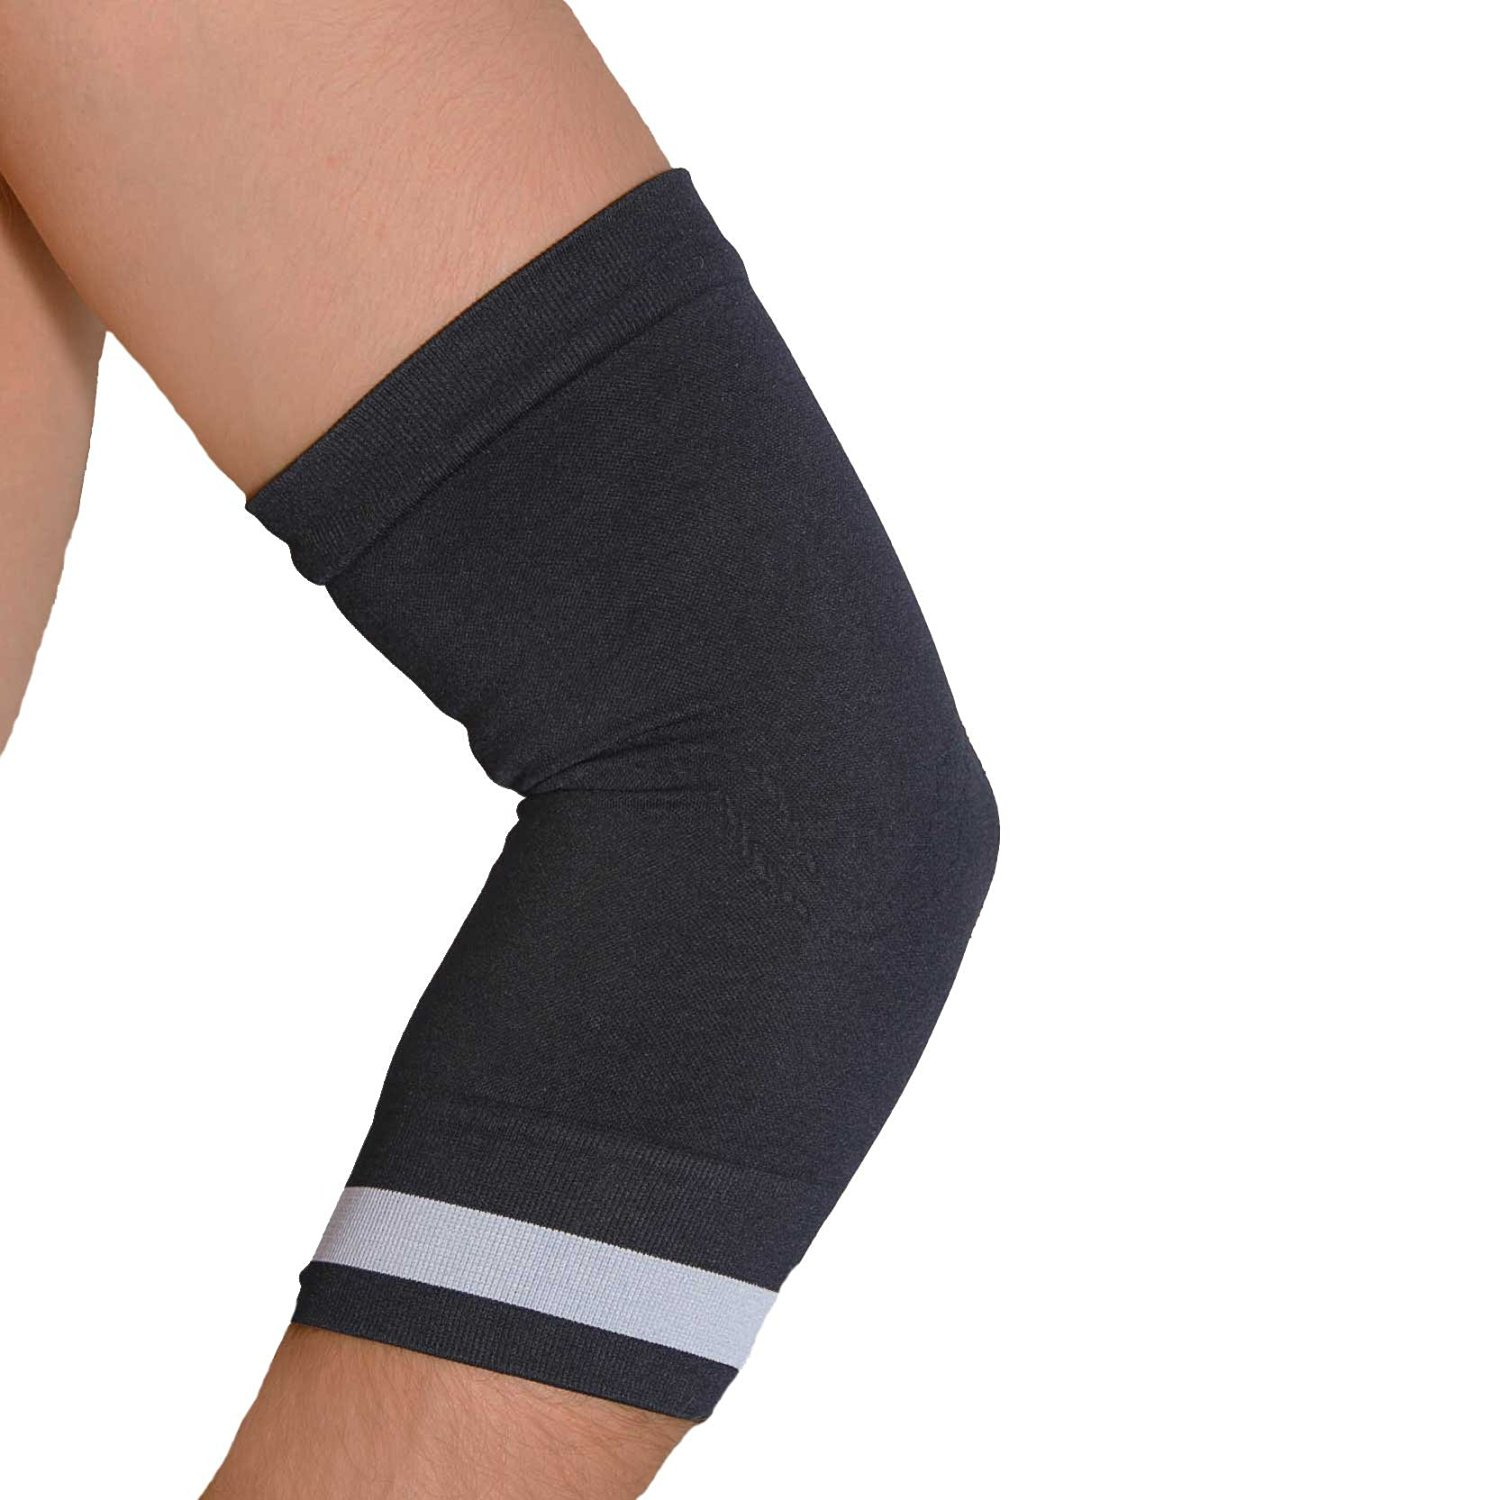 769ba8df73 Get Quotations · Sport Compression Elbow Sleeve - Relieve Tennis Elbow,  Lightweight Elbow Brace